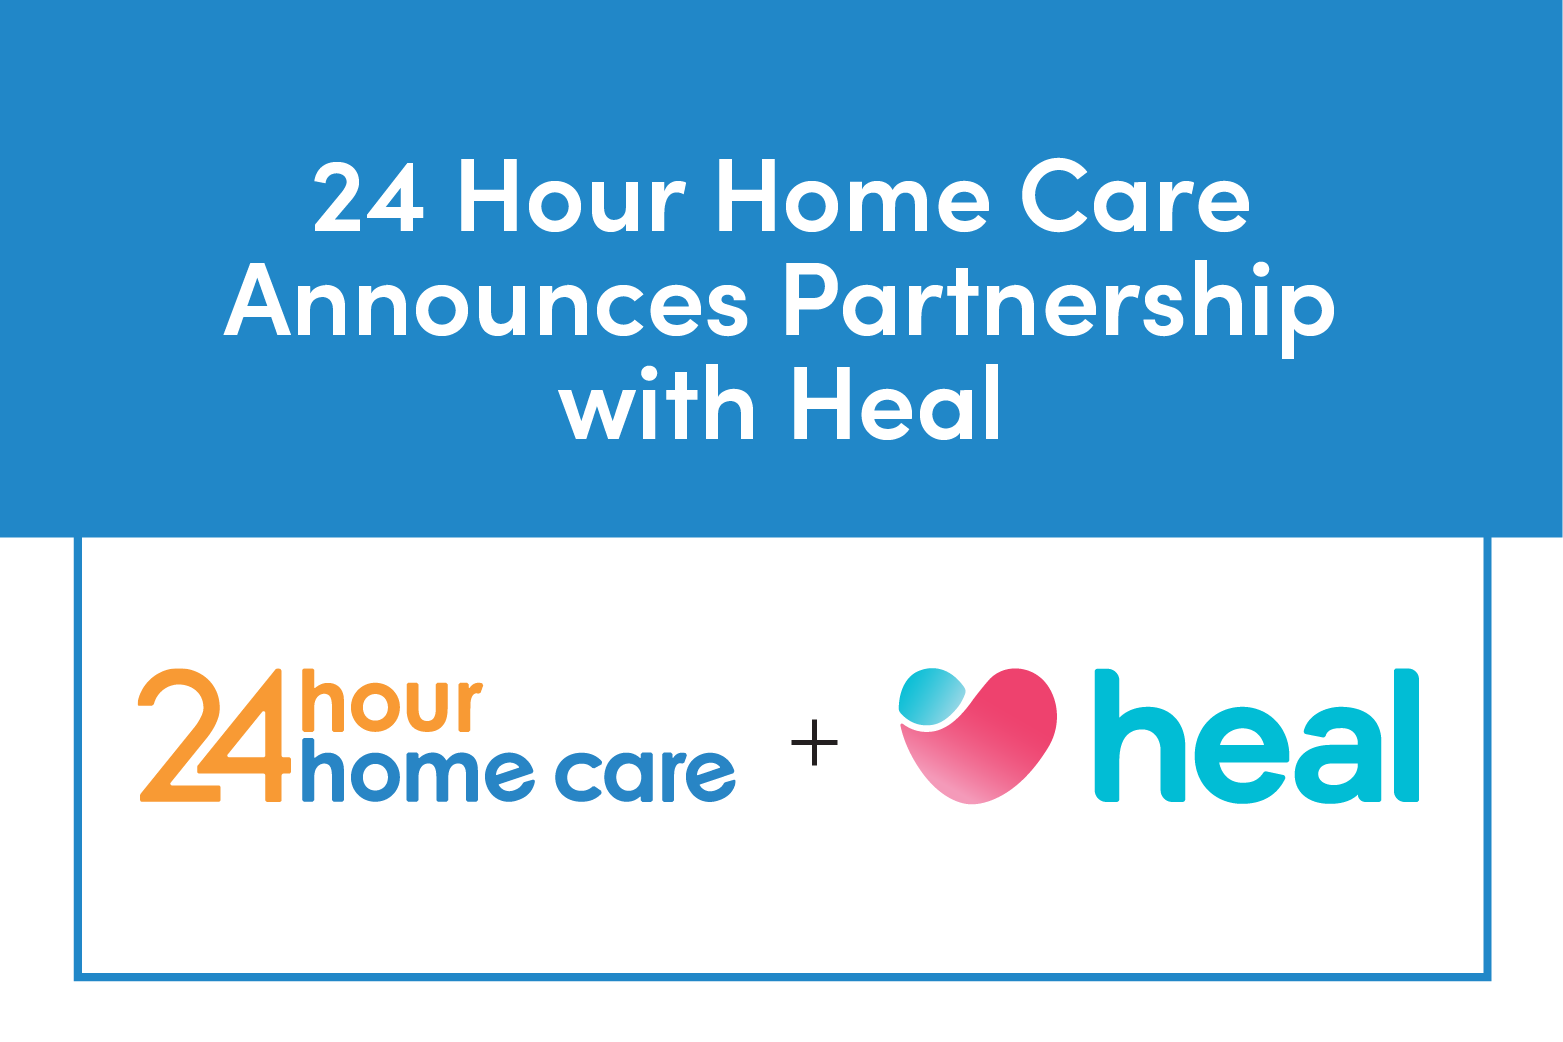 24 Hour Home Care and Heal Team Up to Provide On-Demand Doctor House Calls to Seniors in the Los Angeles Area